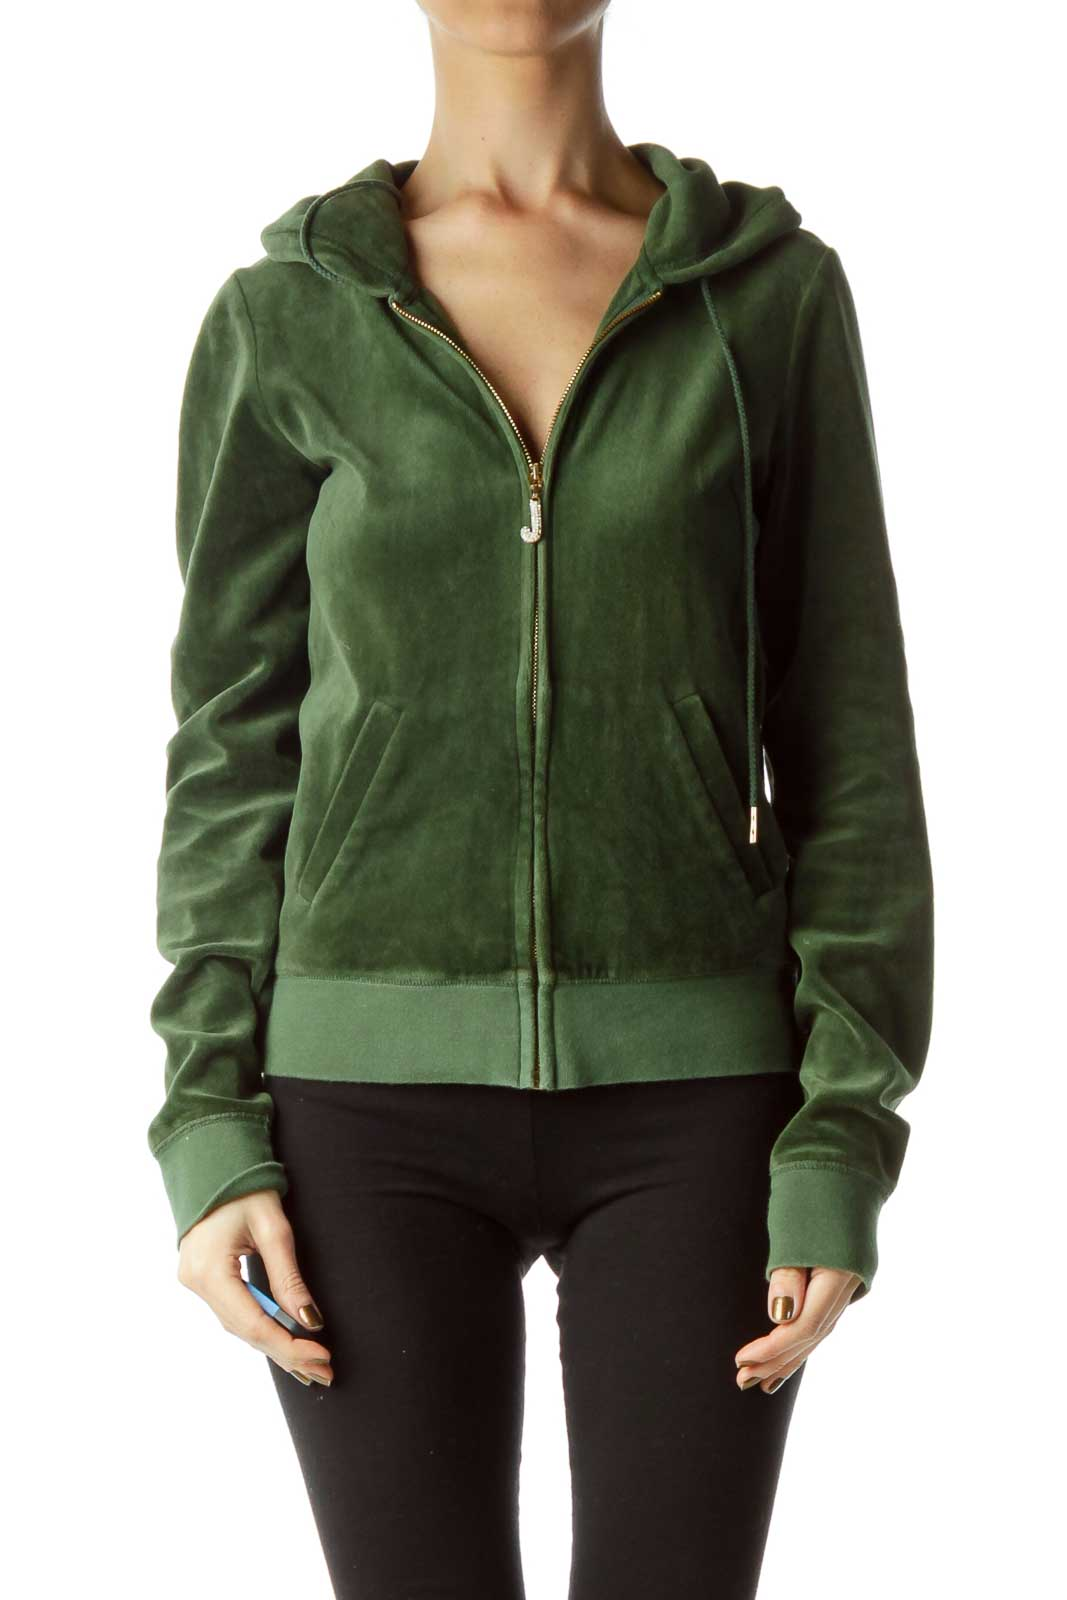 Green Hooded Velvet Full Zip Sweatshirt